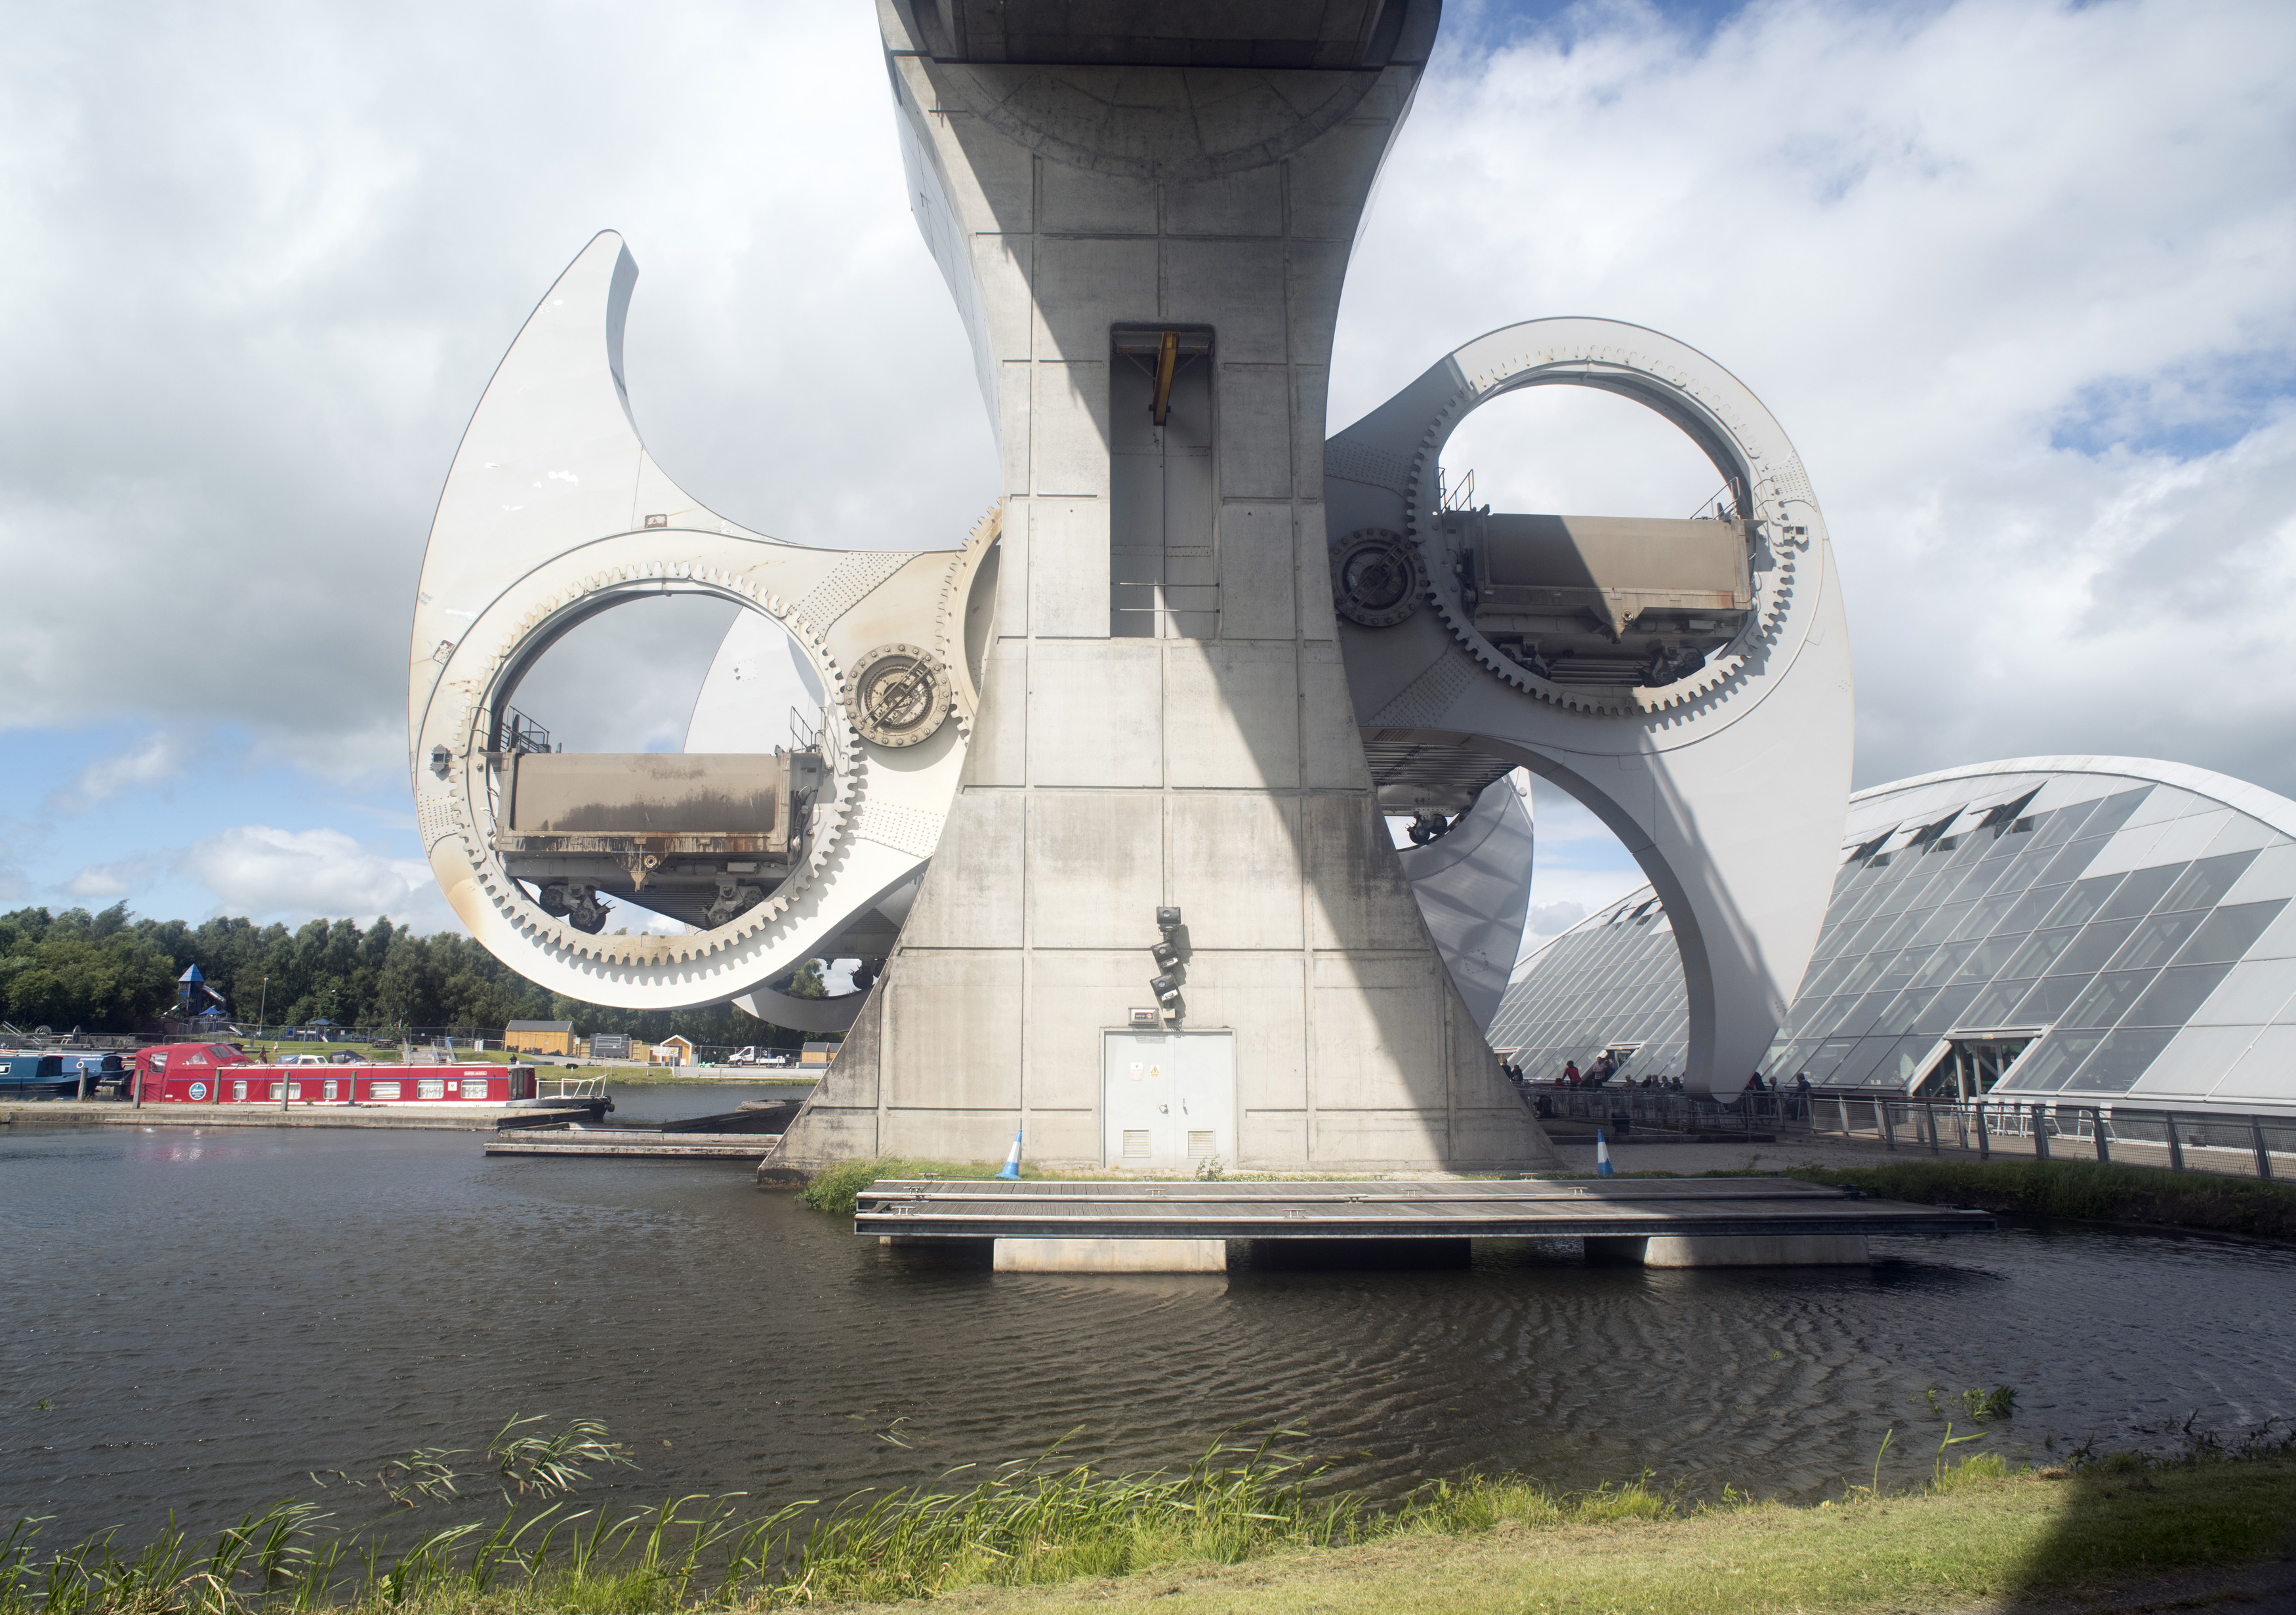 View from under viaduct at the giant Scottish Falkirk Wheel boat lift rotating showing off gears which hold boats